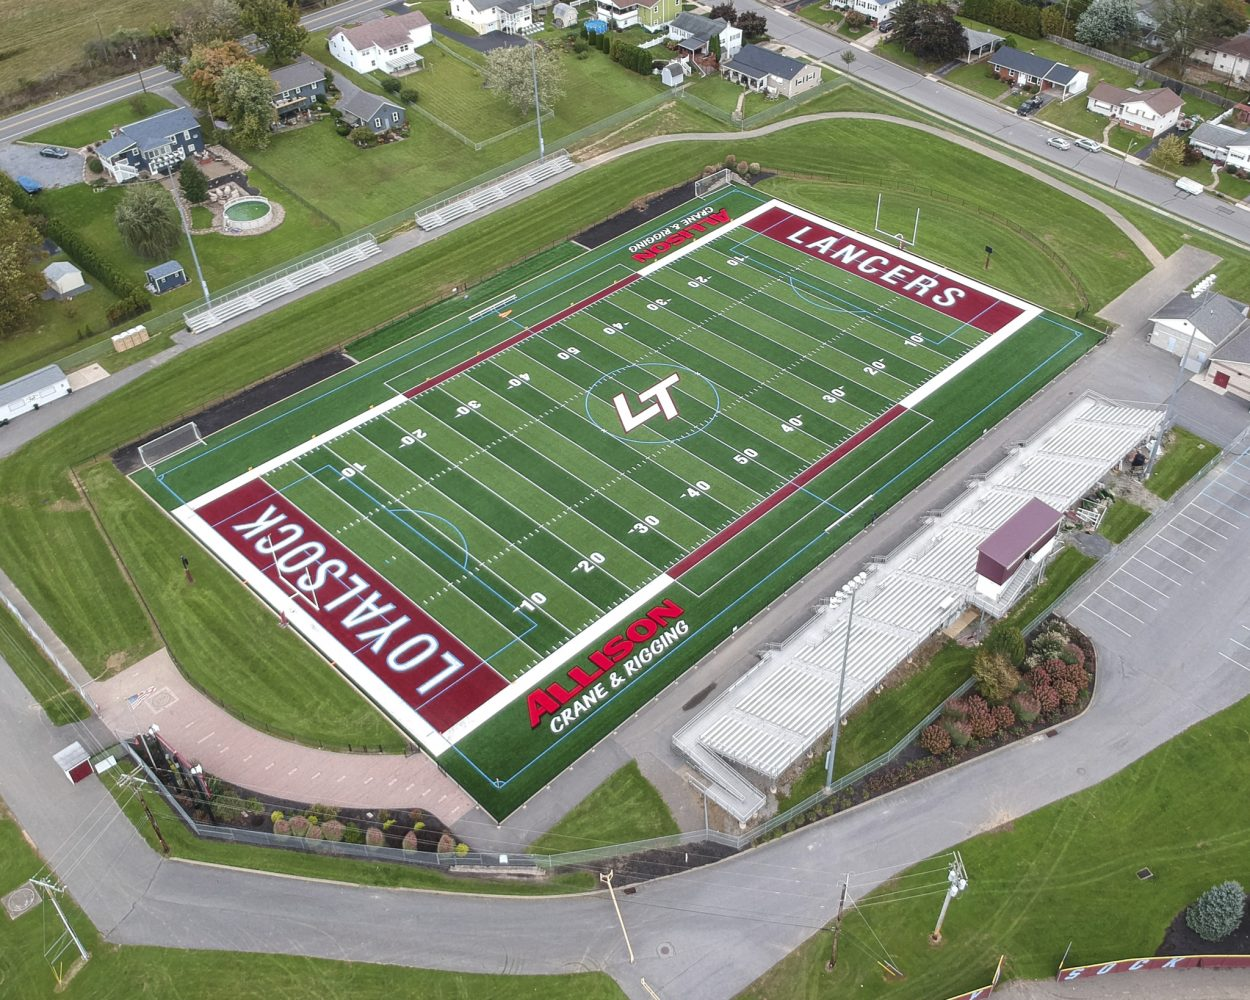 Football field ariel shot